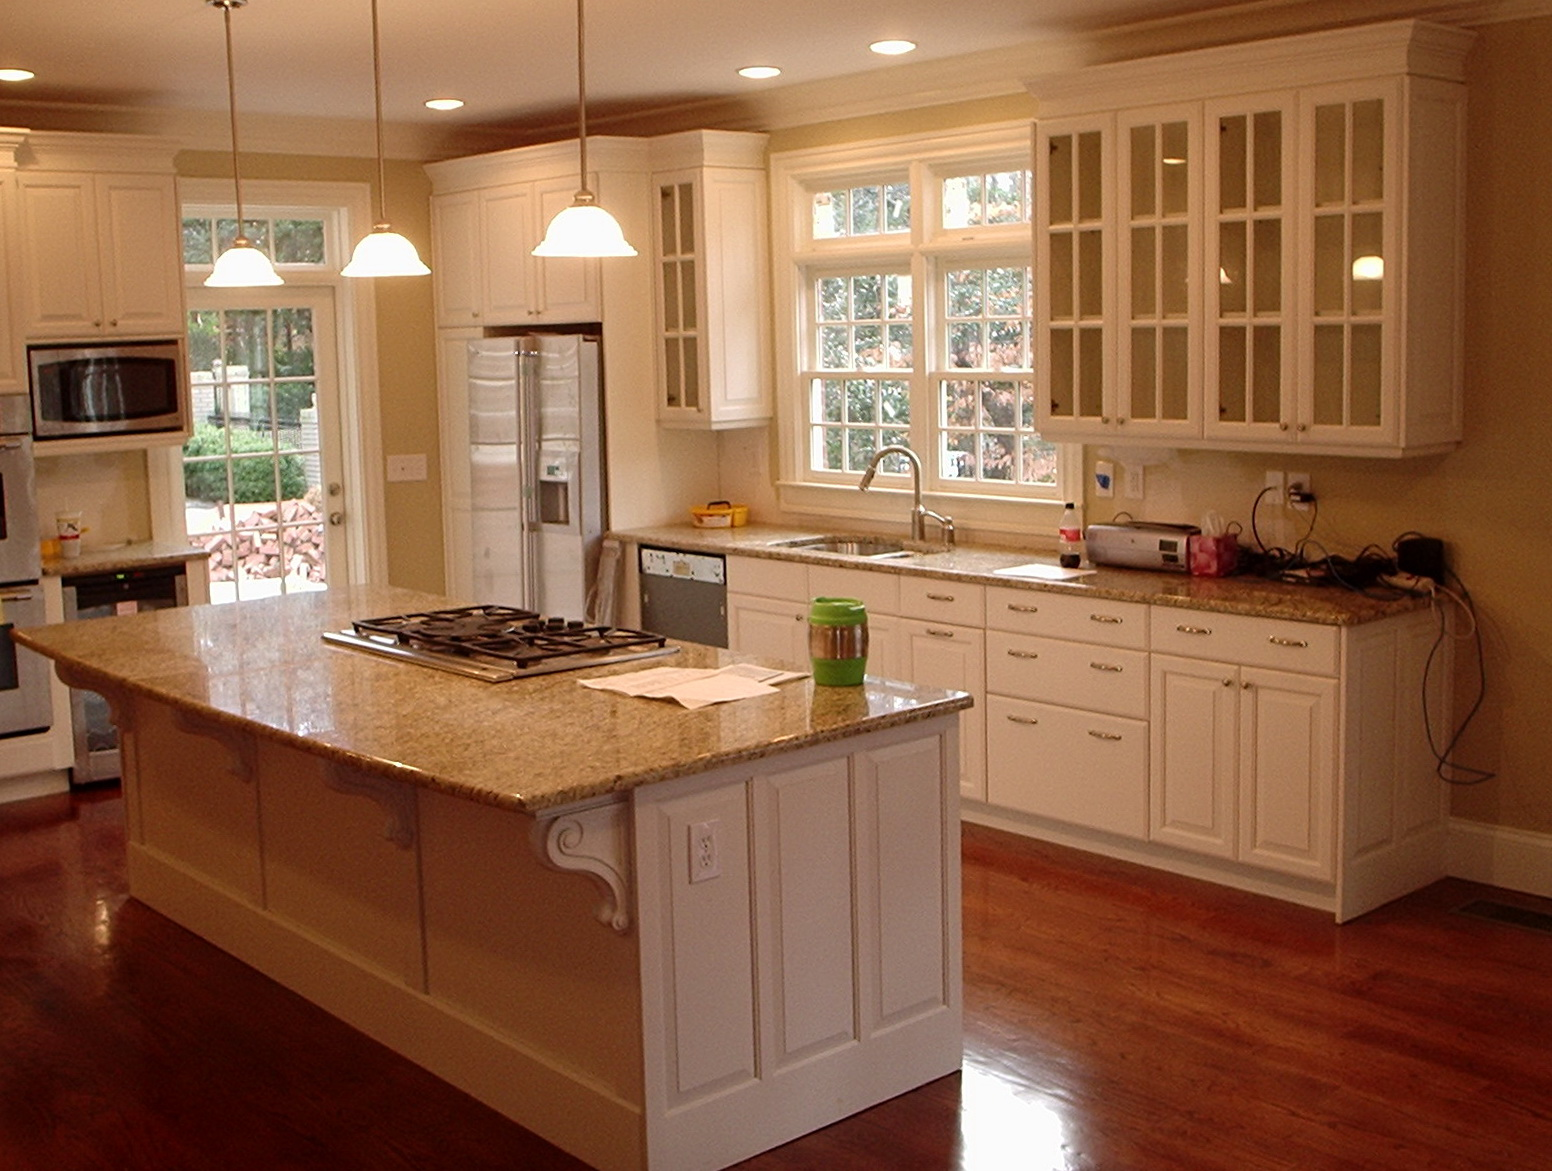 Kitchen Renovation Costs Canada